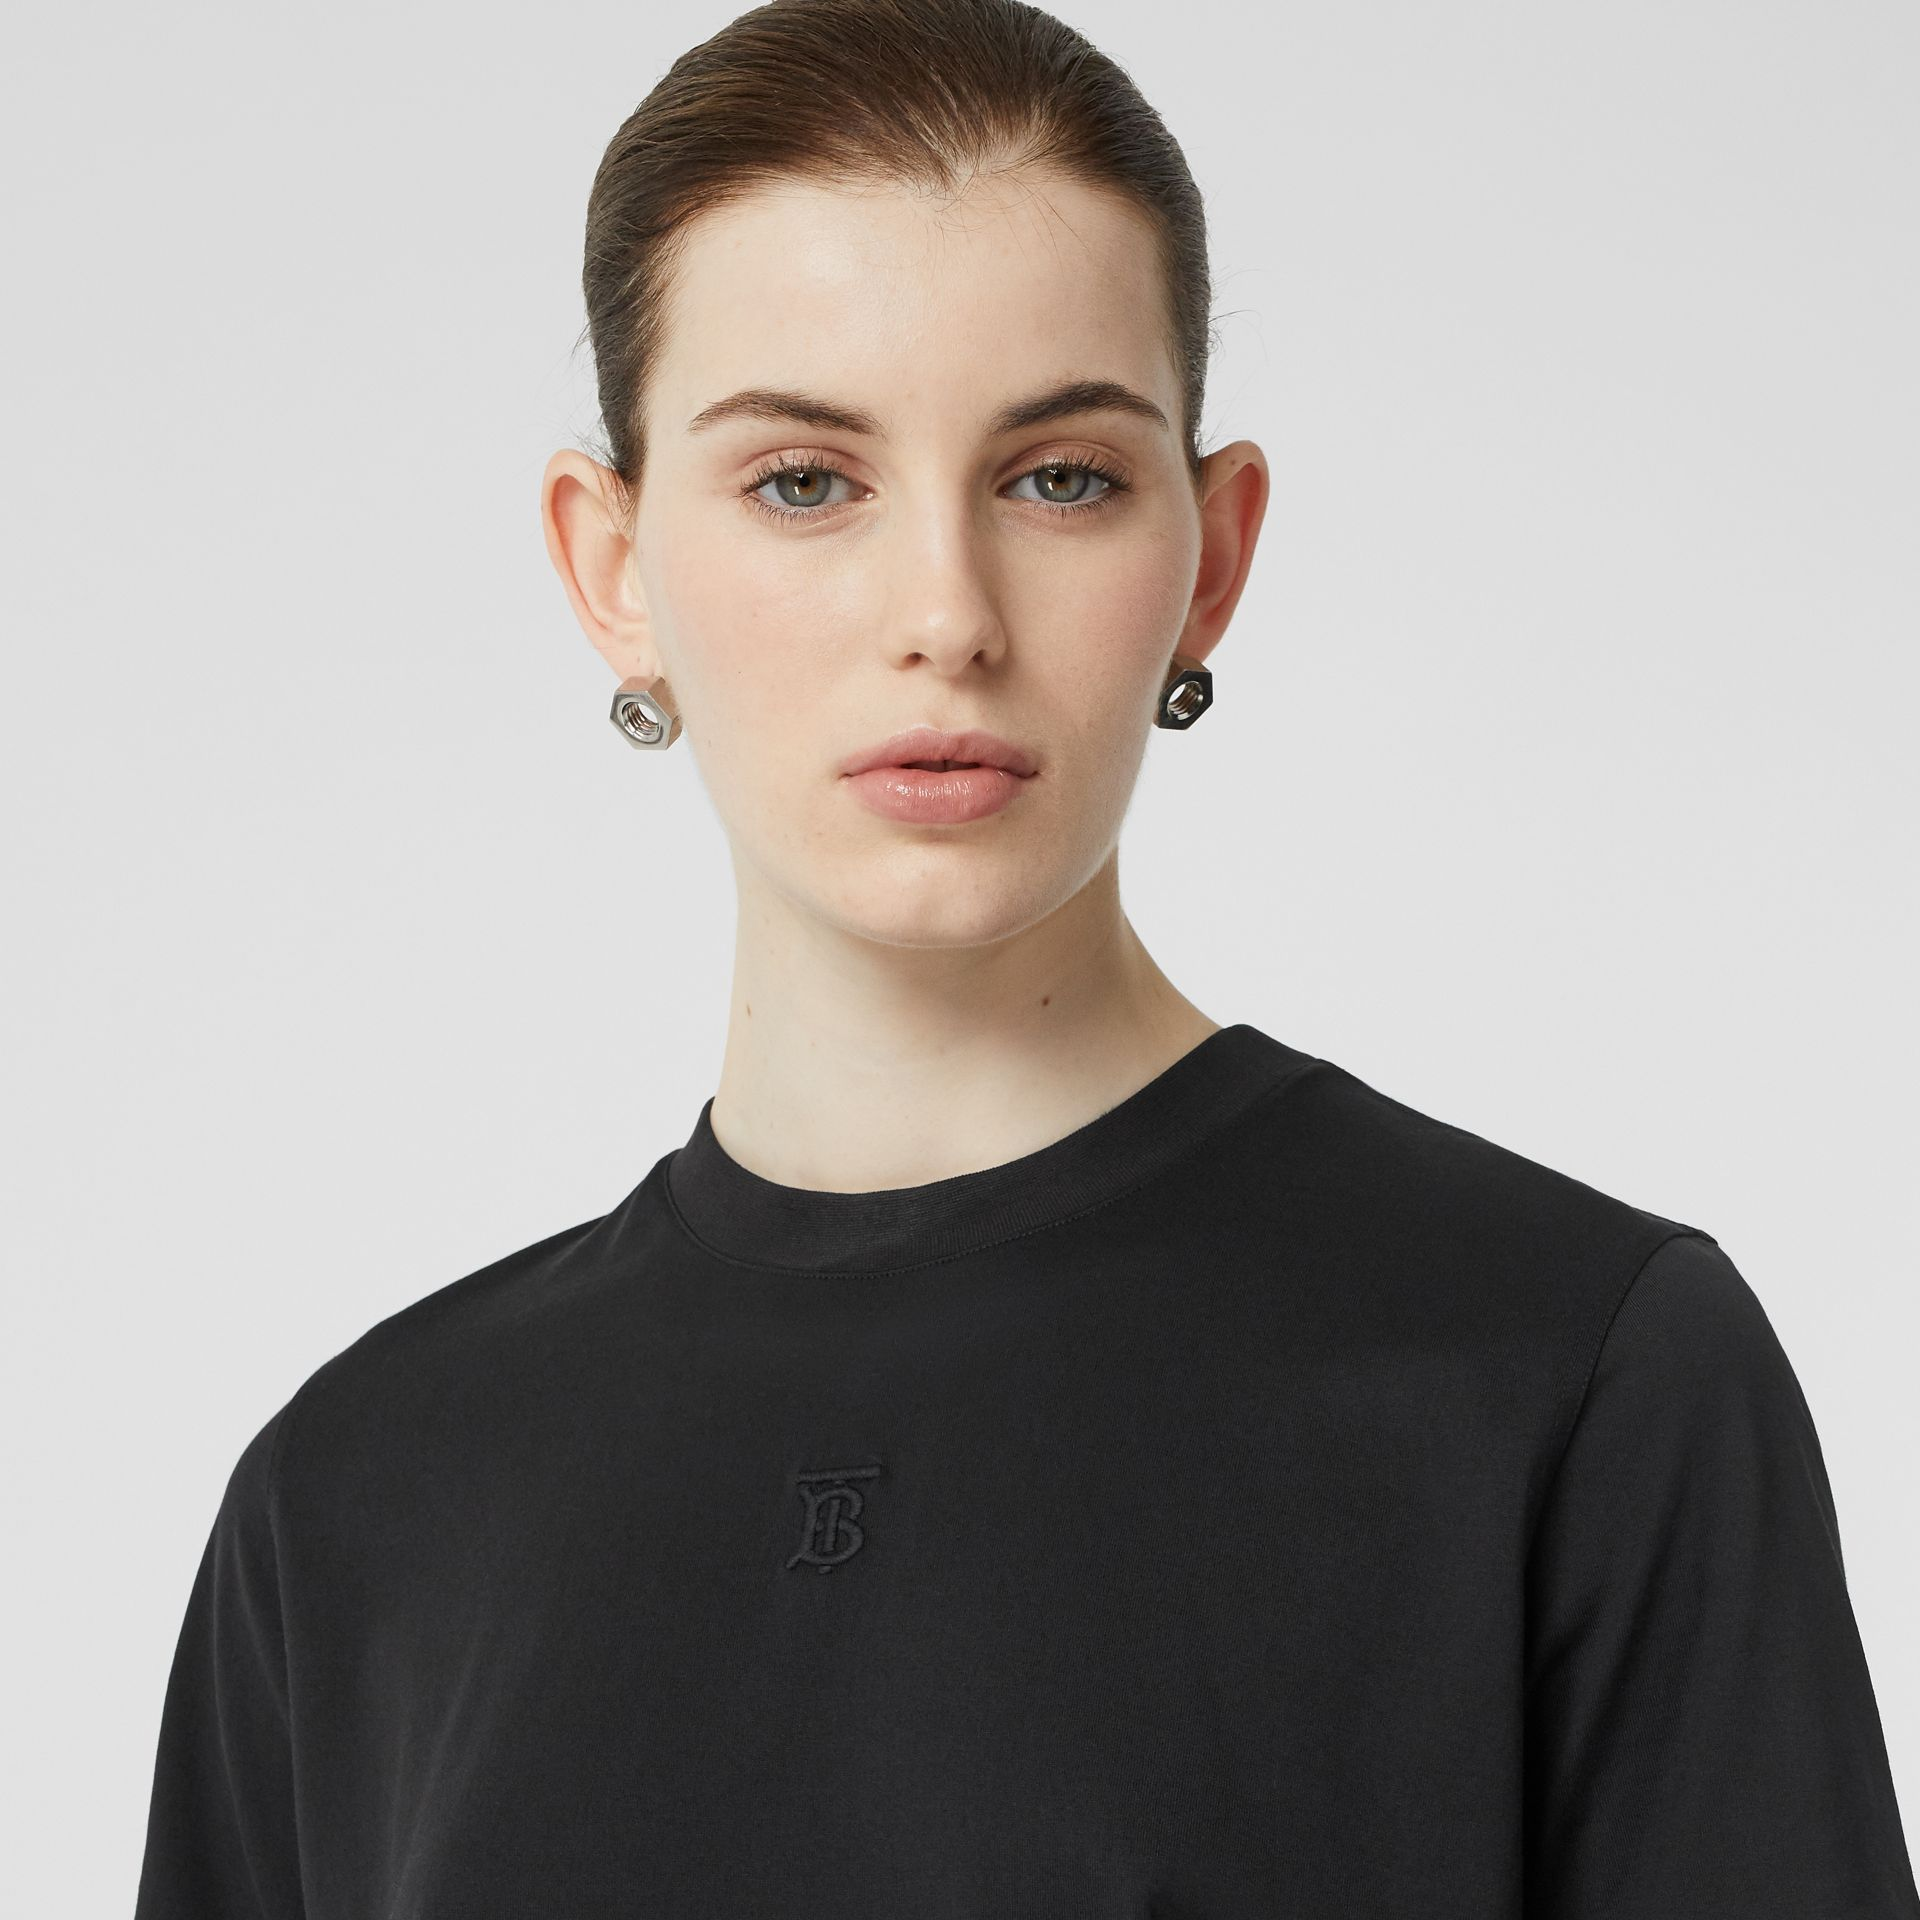 Monogram Motif Cotton T-shirt in Black - Women | Burberry United States - gallery image 1